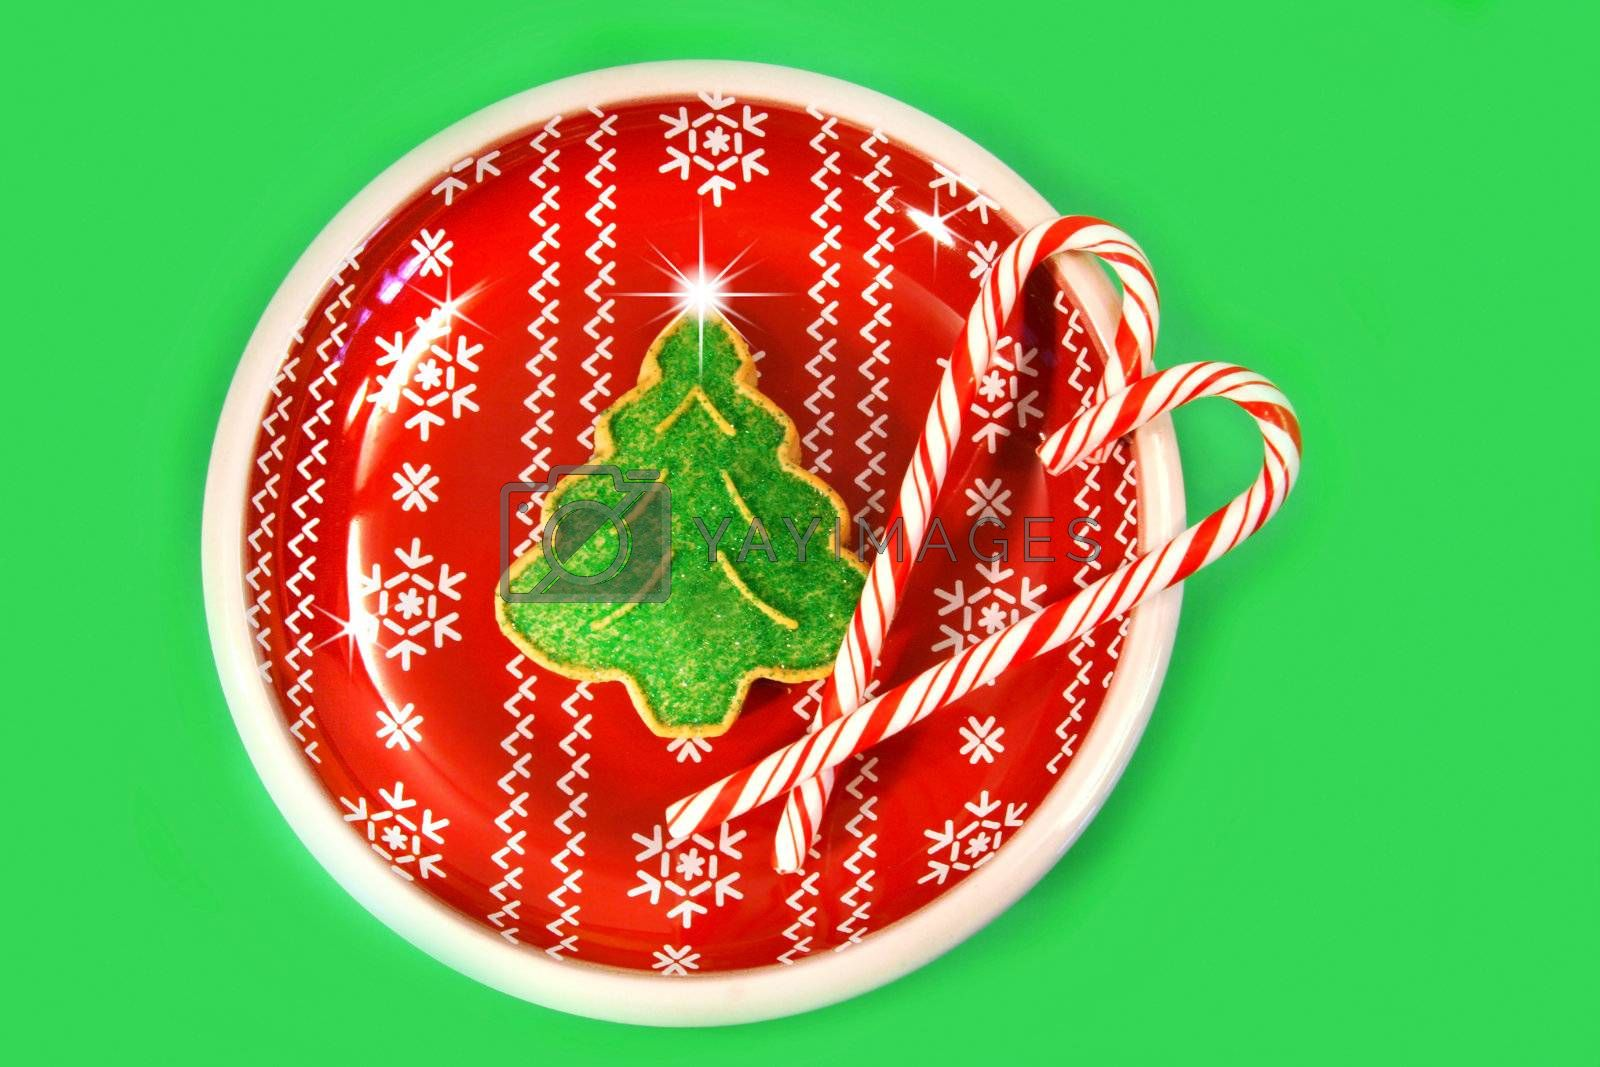 Green christmas tree cookie with candy canes on red plate